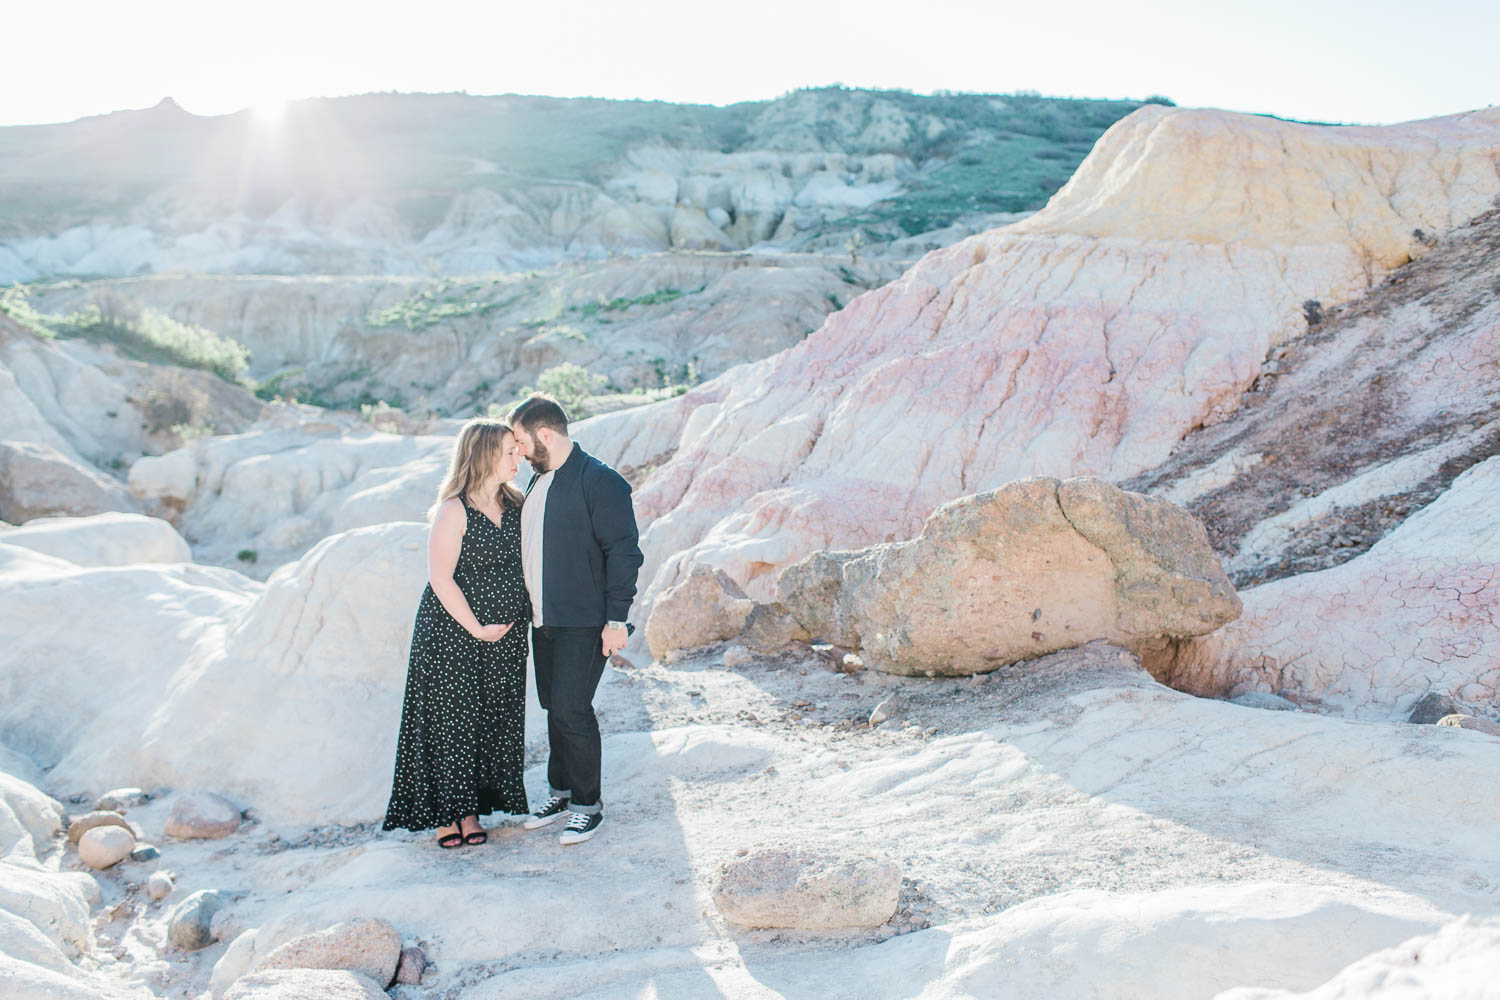 Colorado Couple Portrait Photography Session in the Paint Mines